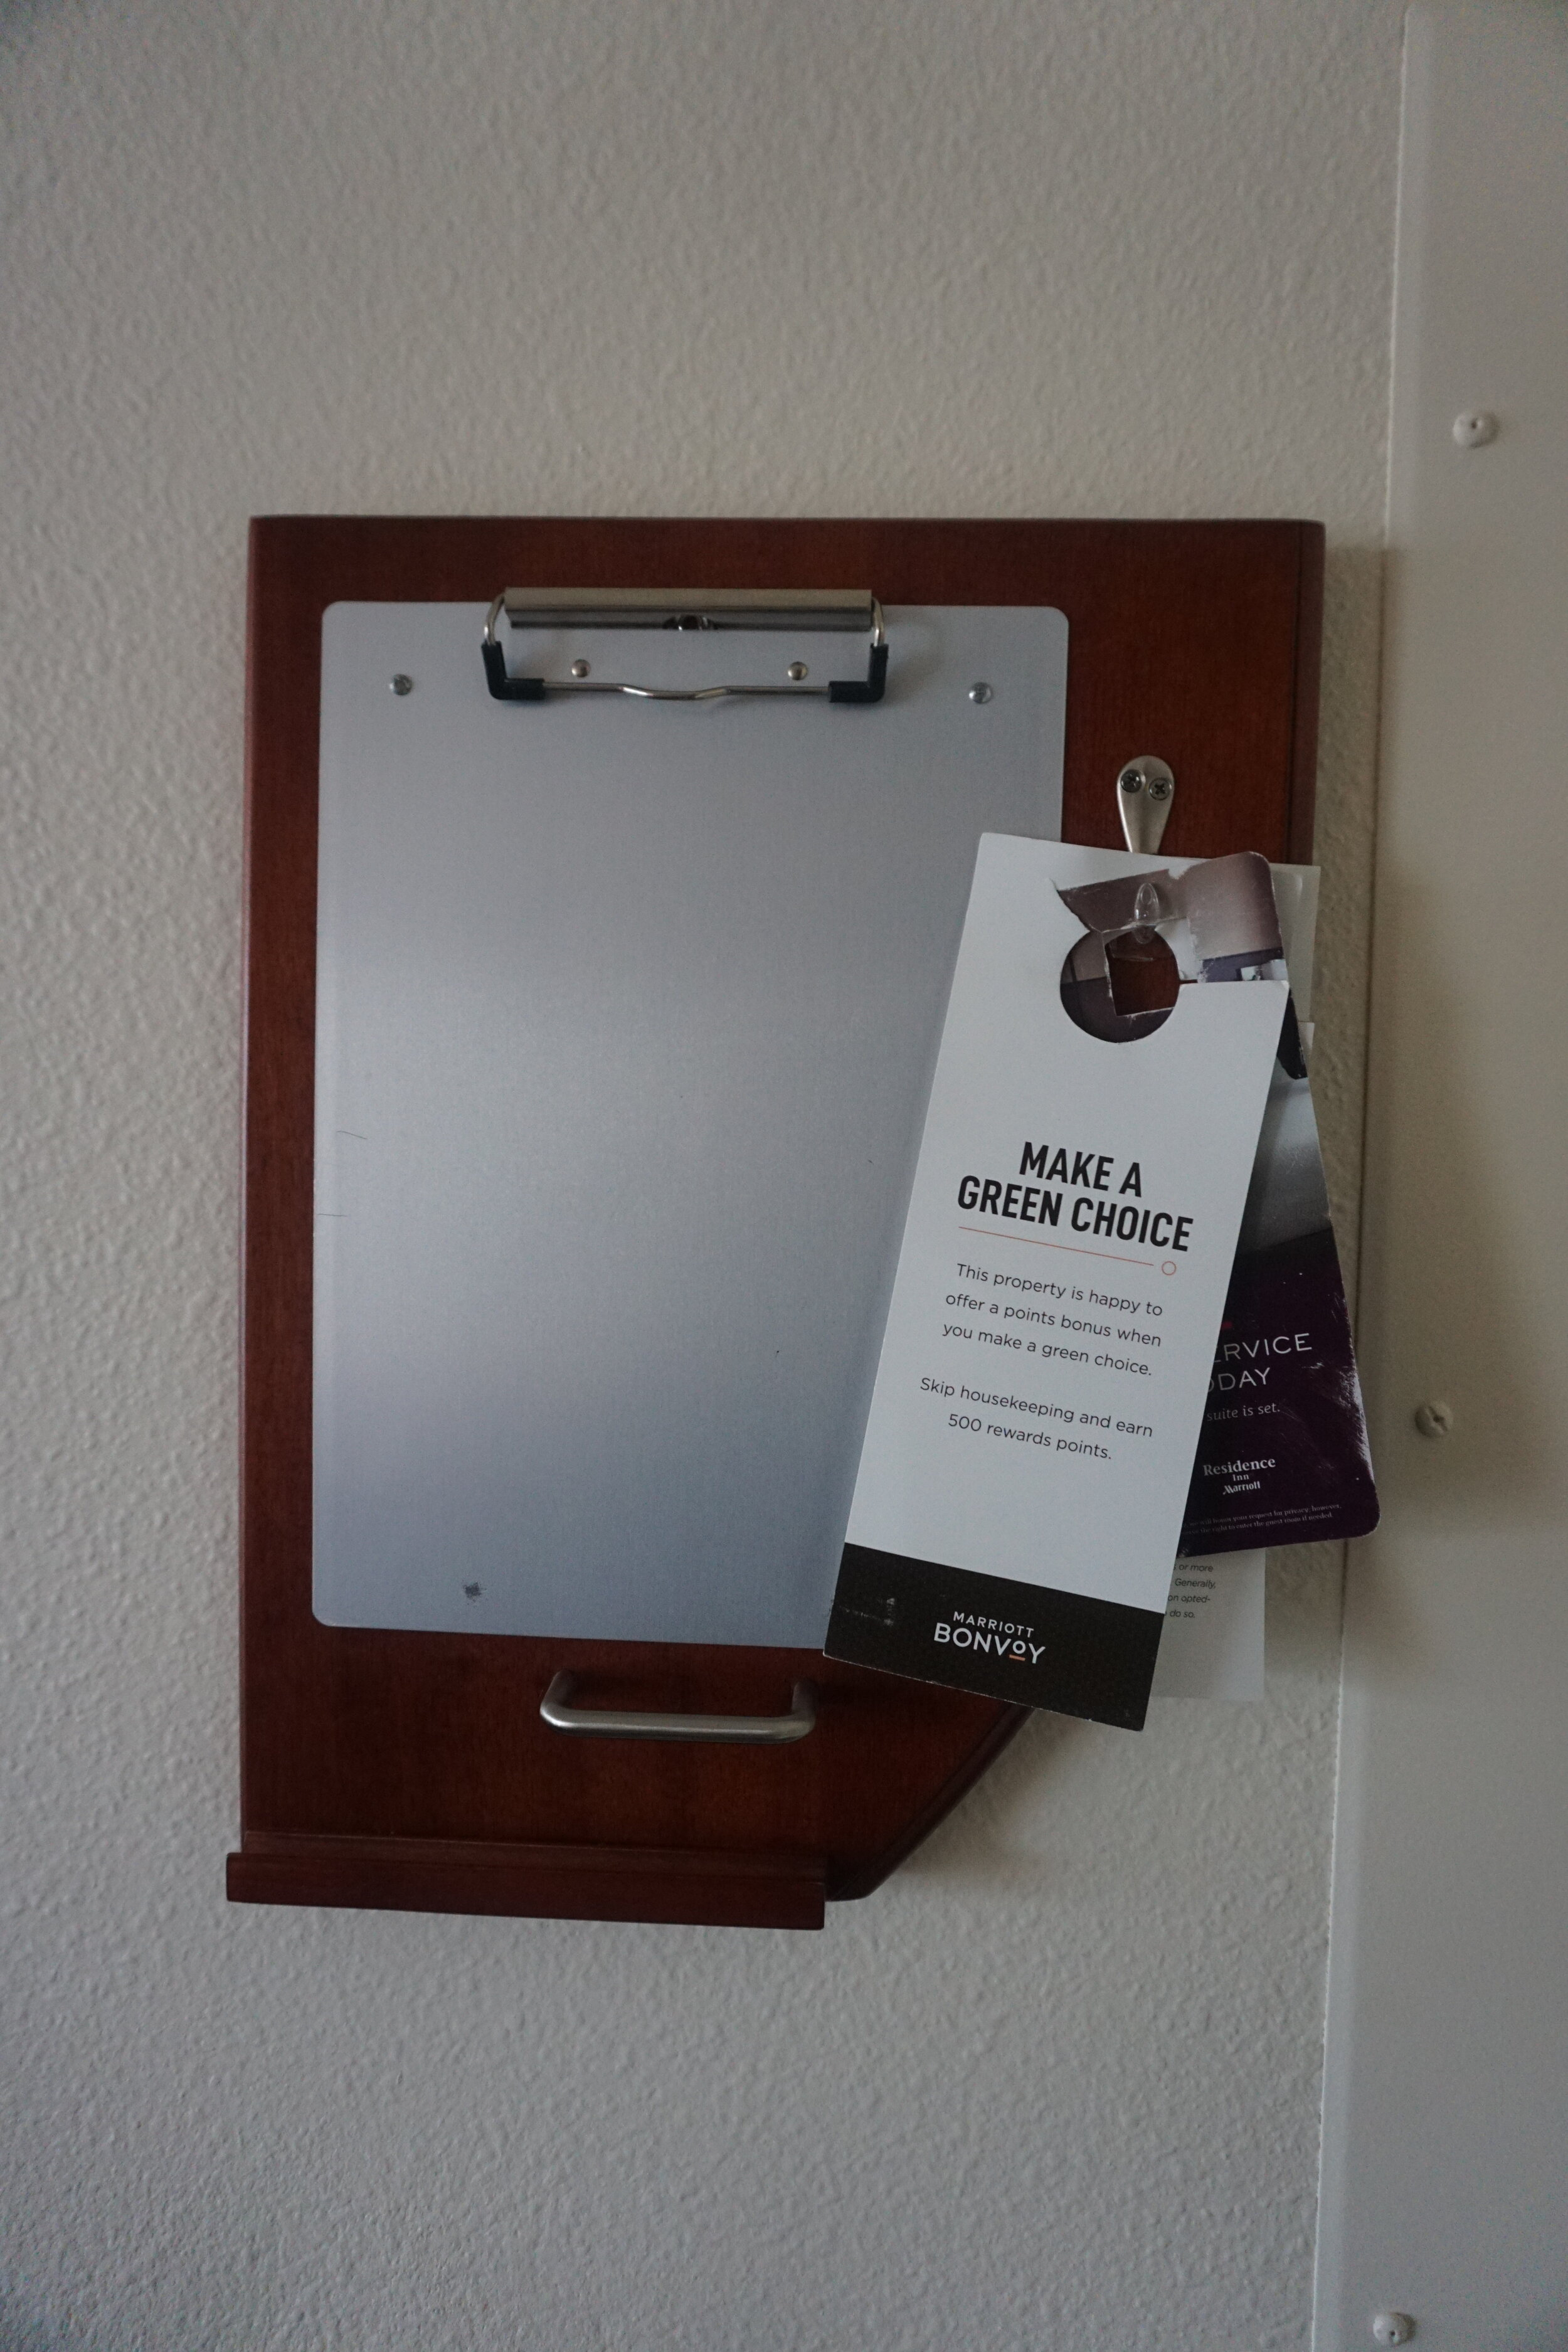 """Clipboard by the door, this hotel still offers """"make a green choice"""" for skipping housekeeping"""